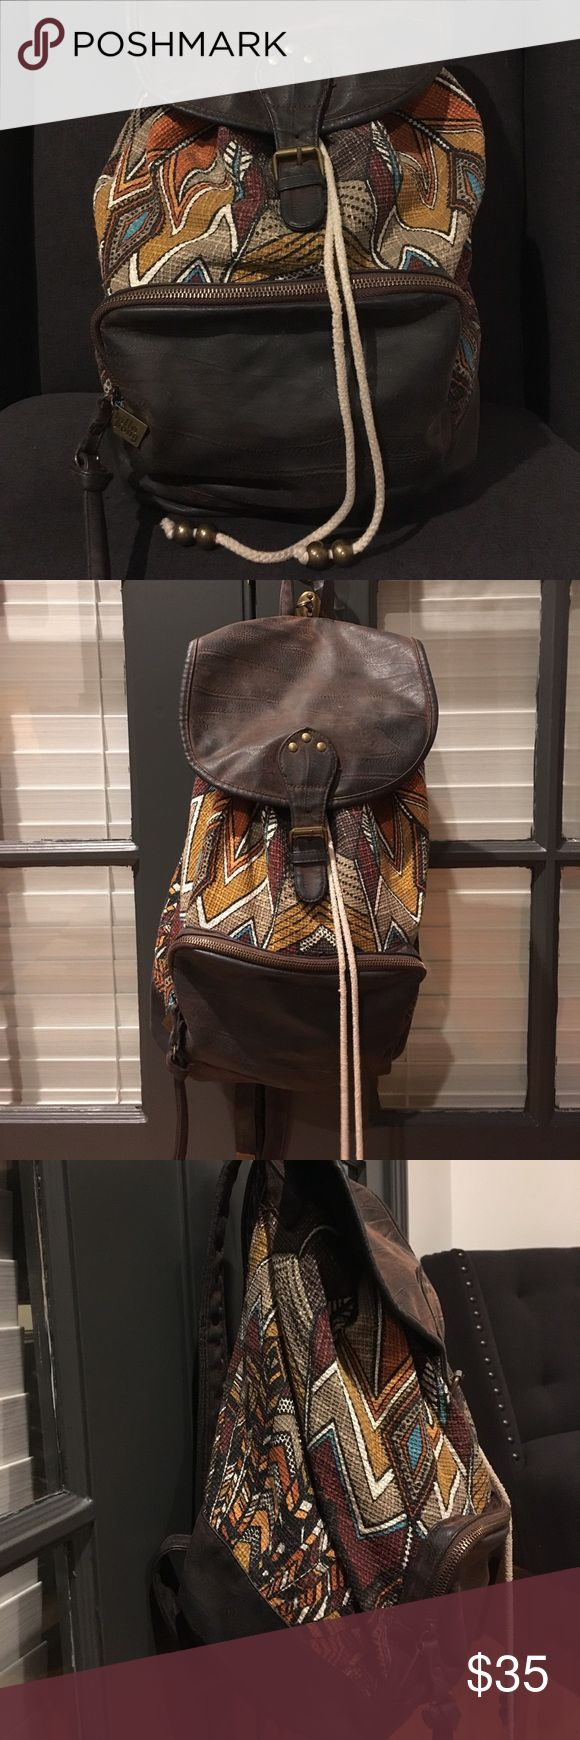 Billabong Oracle Fox Backpack Ethnic pattern with faux leather trim. Has a small zip pocket on front and one zip pocket inside. Magnetic snap buckle with drawstring tie. Straps adjust. Very clean inside and out, in great condition! This backpack is out of stock in stores. Billabong Bags Backpacks